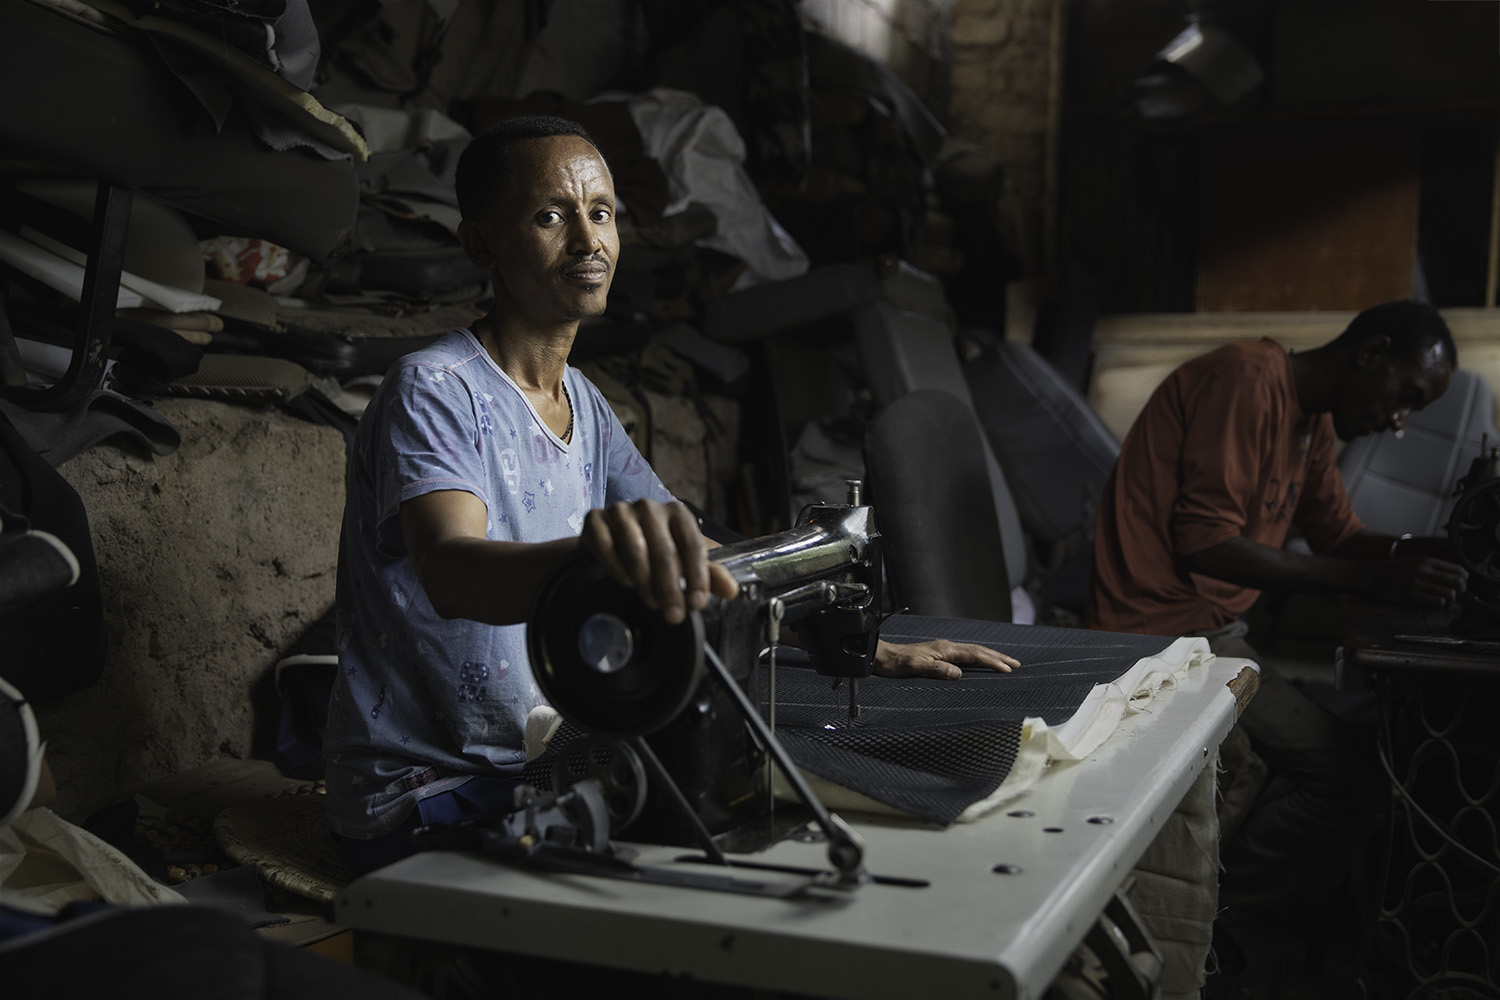 Man sitting a sew machine in upholstery shop in Ethiopia